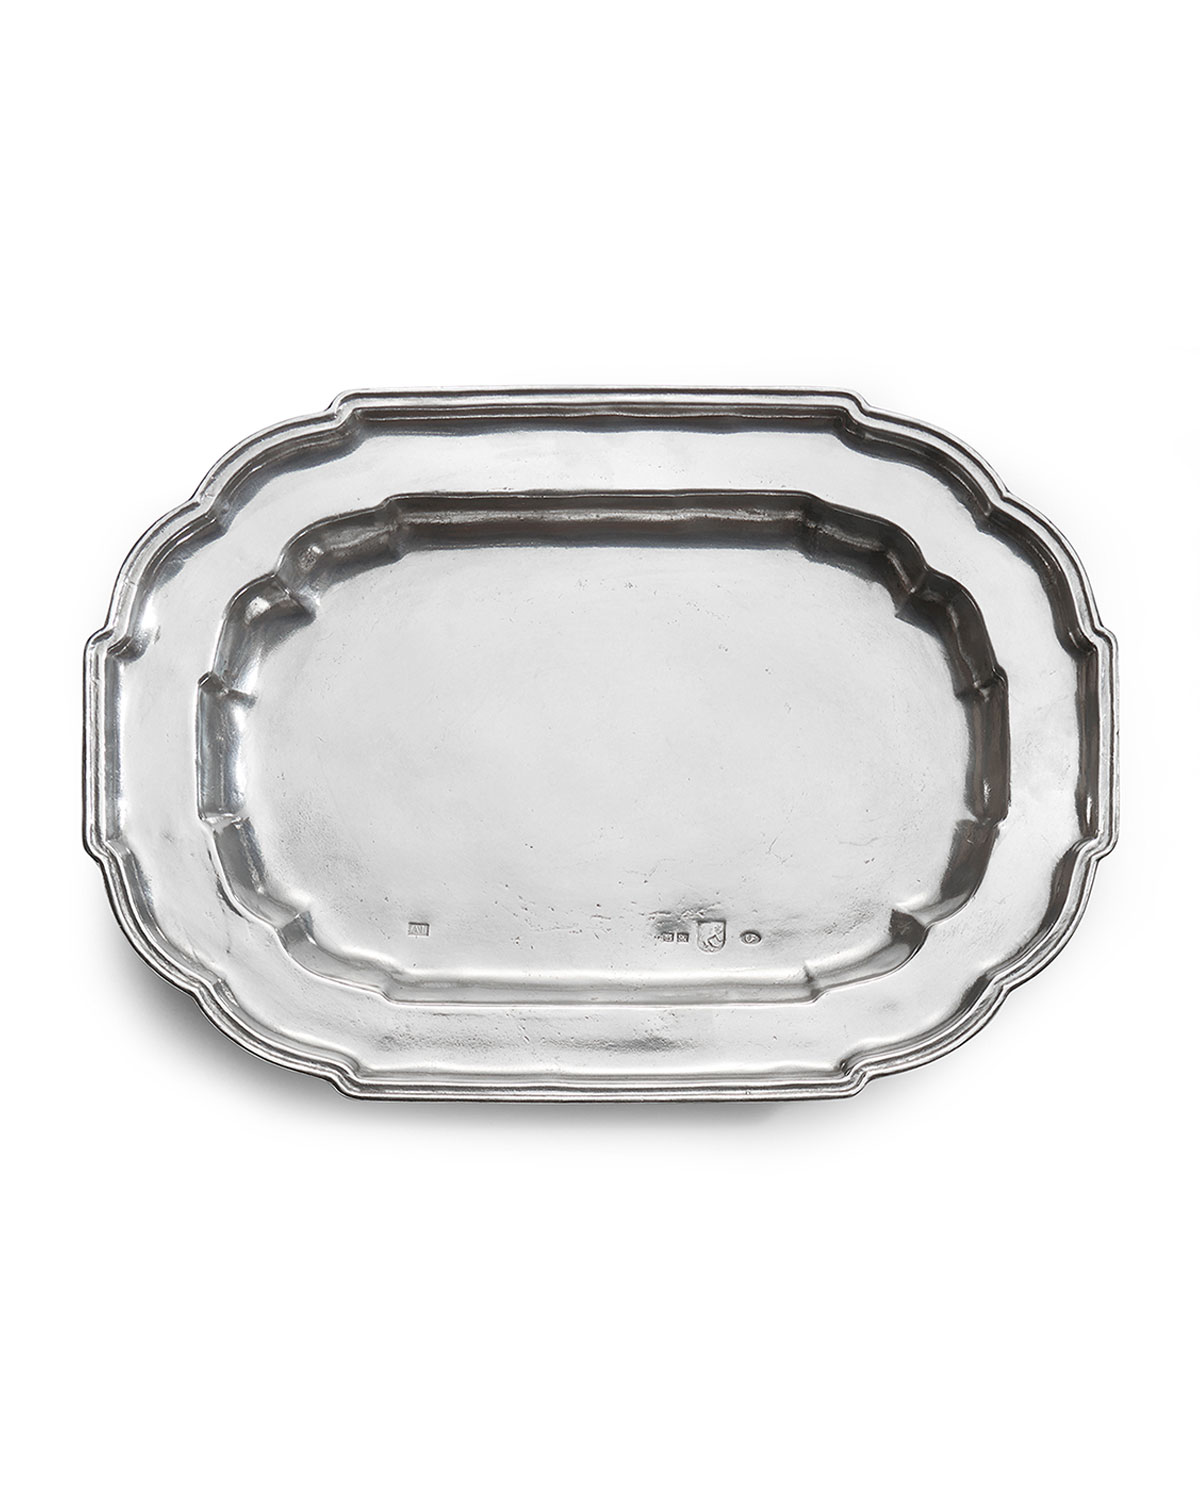 Arte Italica VINTAGE LARGE OVAL SCALLOPED TRAY